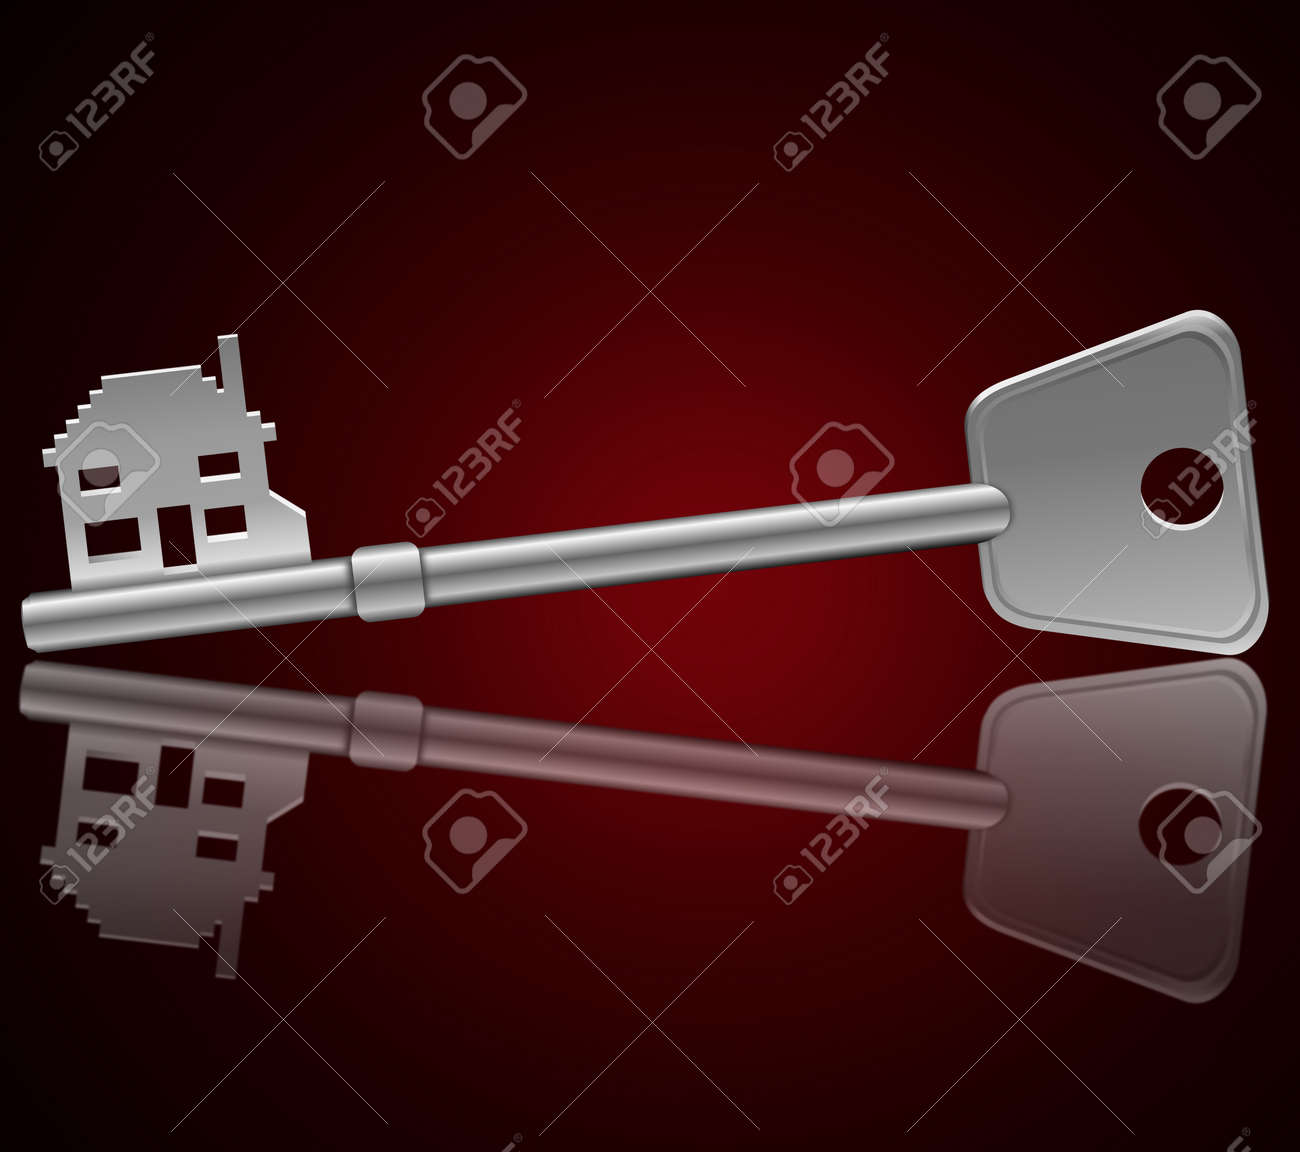 Illustration depicting a single key with a Stock Illustration - 11987316